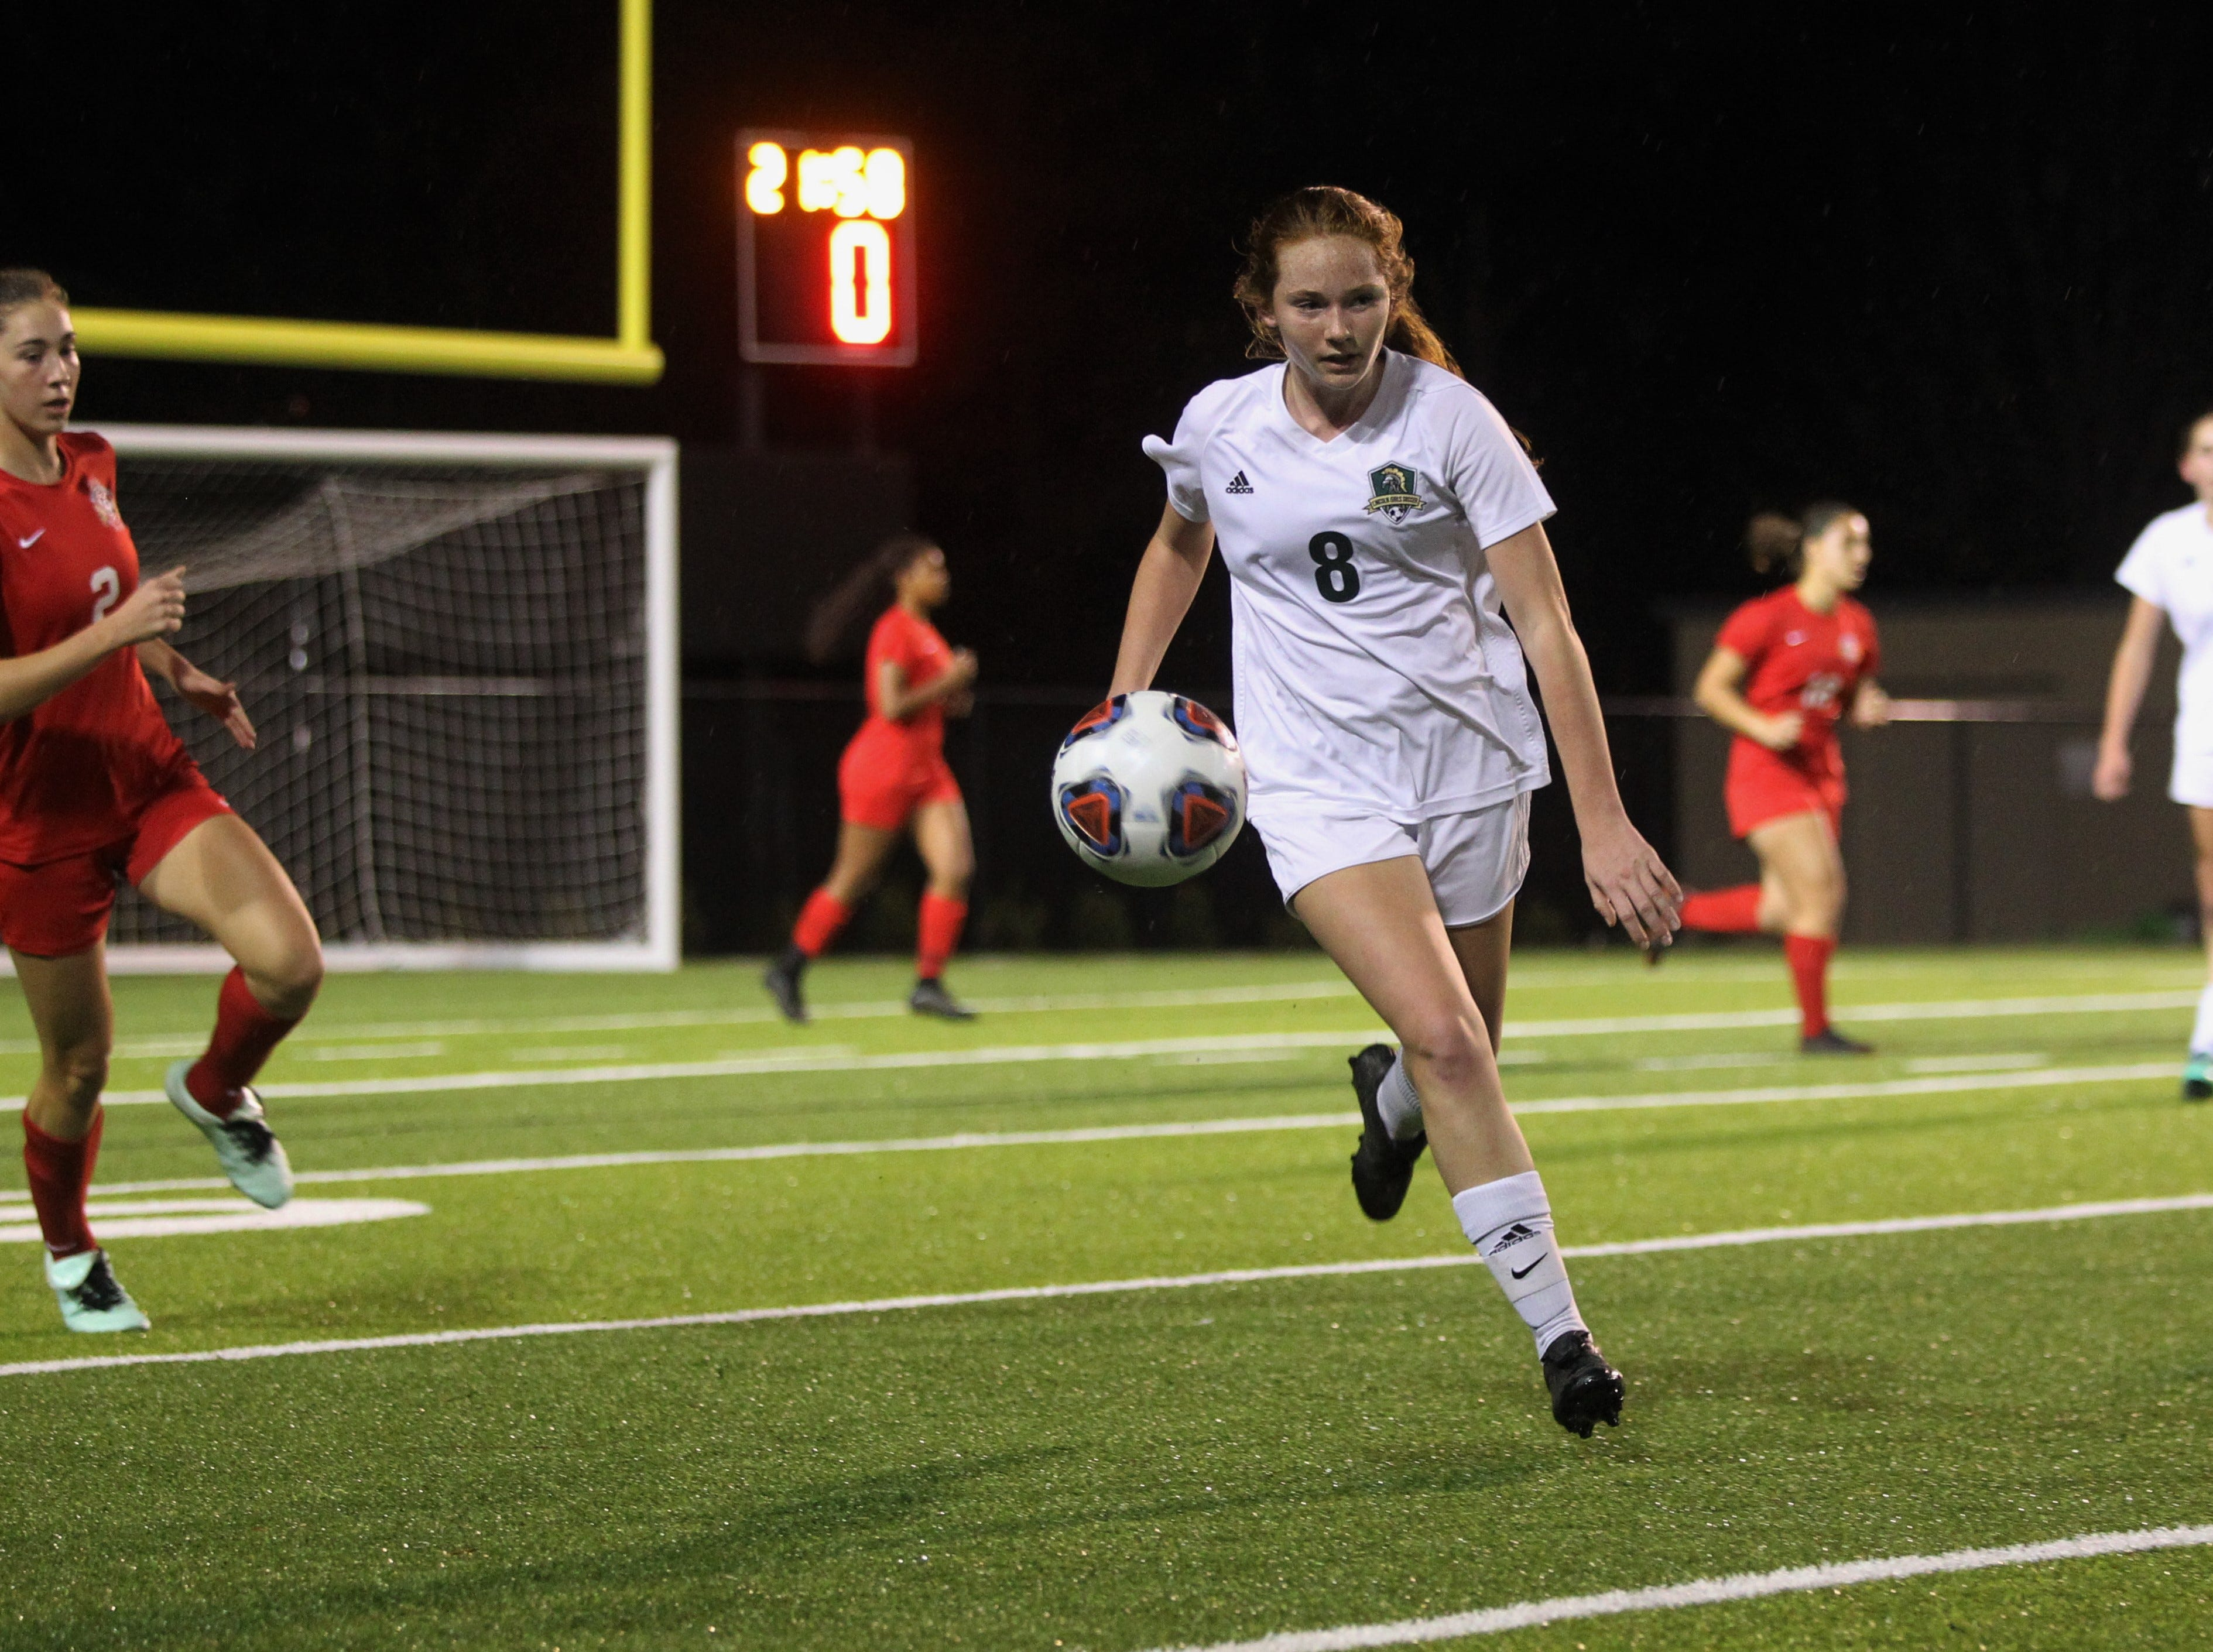 Lincoln's Rylee French chases down a pass as Leon's girls soccer team beat Lincoln in the District 2-4A championship on Feb. 1, 2019.